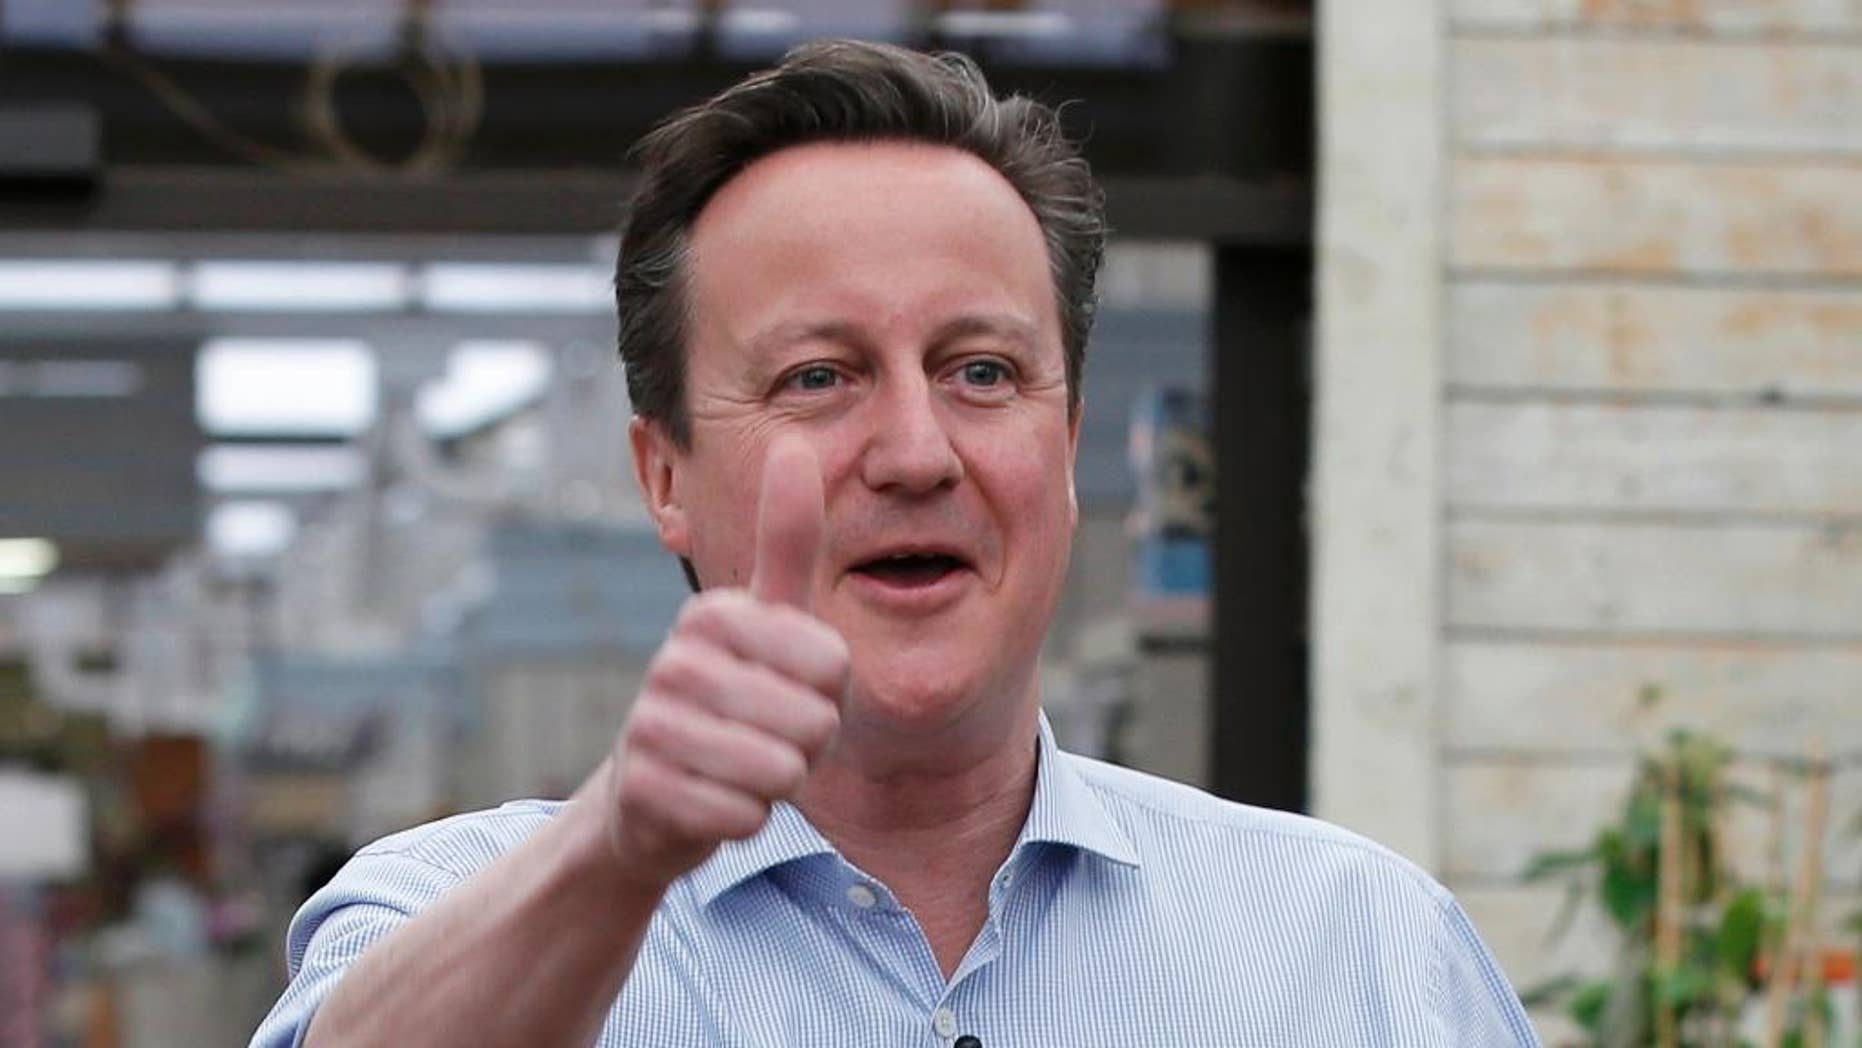 Britain's Prime Minister and Conservative Party leader David Camer  gestures to supporters  in Twickenham, London, Tuesday May 5, 2015. Britain will go to the polls in a national election on May 7. (AP Photo/Peter Nicholls, Pool)